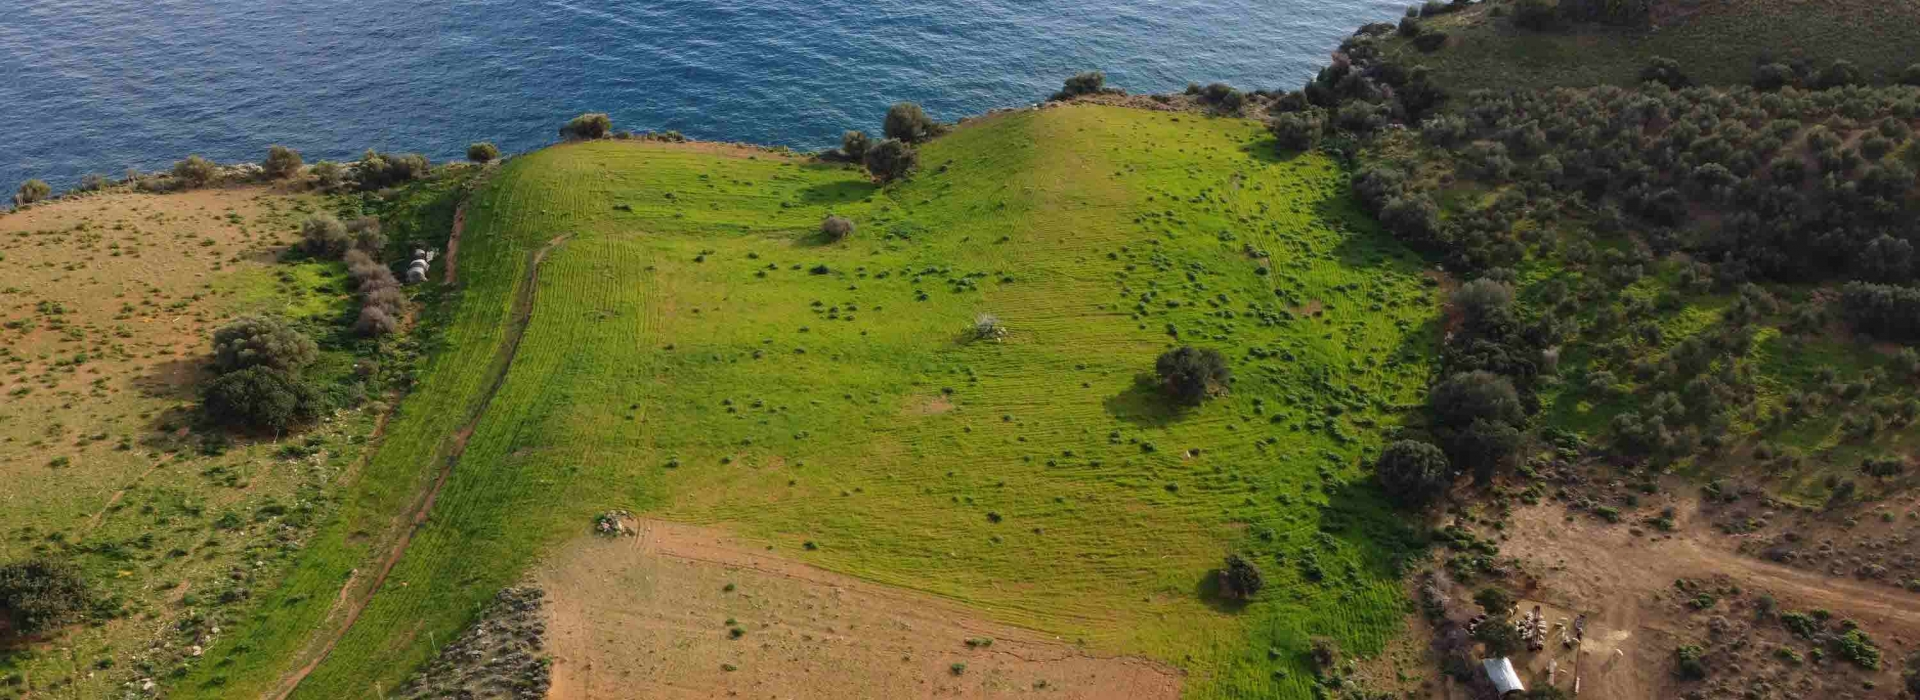 SEASIDE LAND PLOT OF 26 ACRES FOR SALE IN AGIA GALINI WITH BUILDING PERMISSION